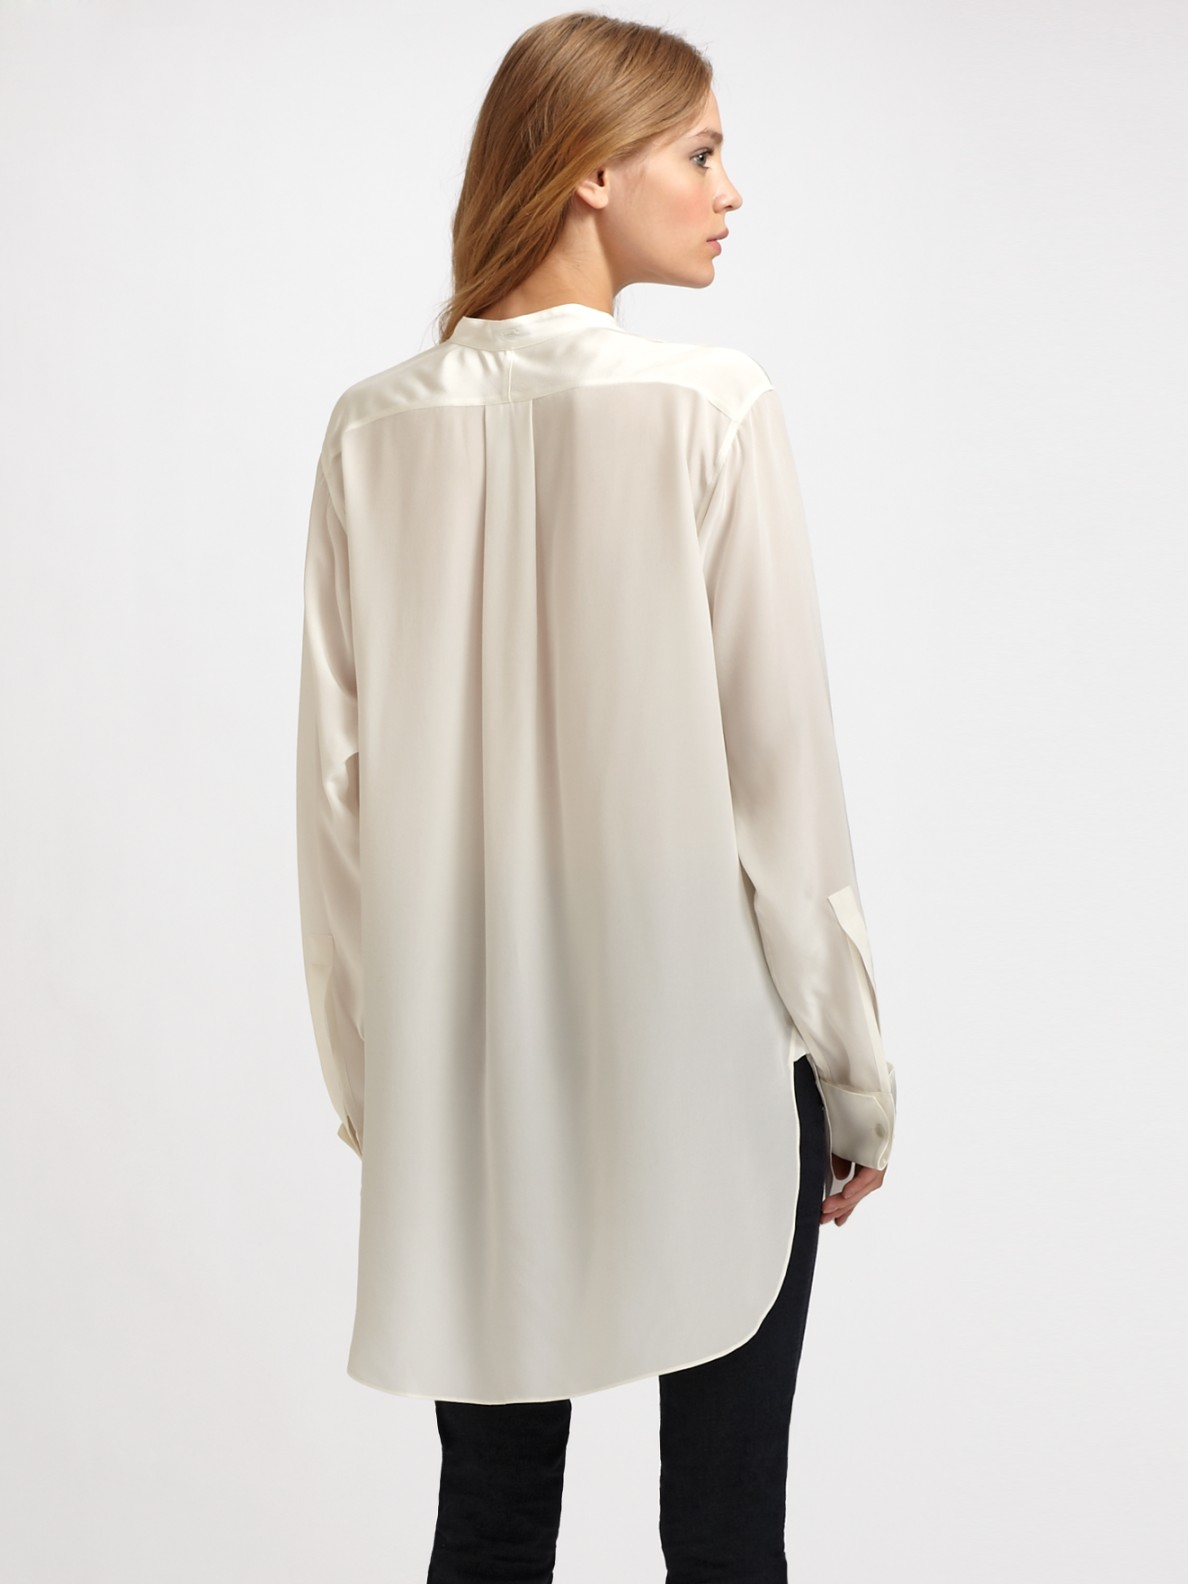 How To Wear An Oversized White Blouse 5